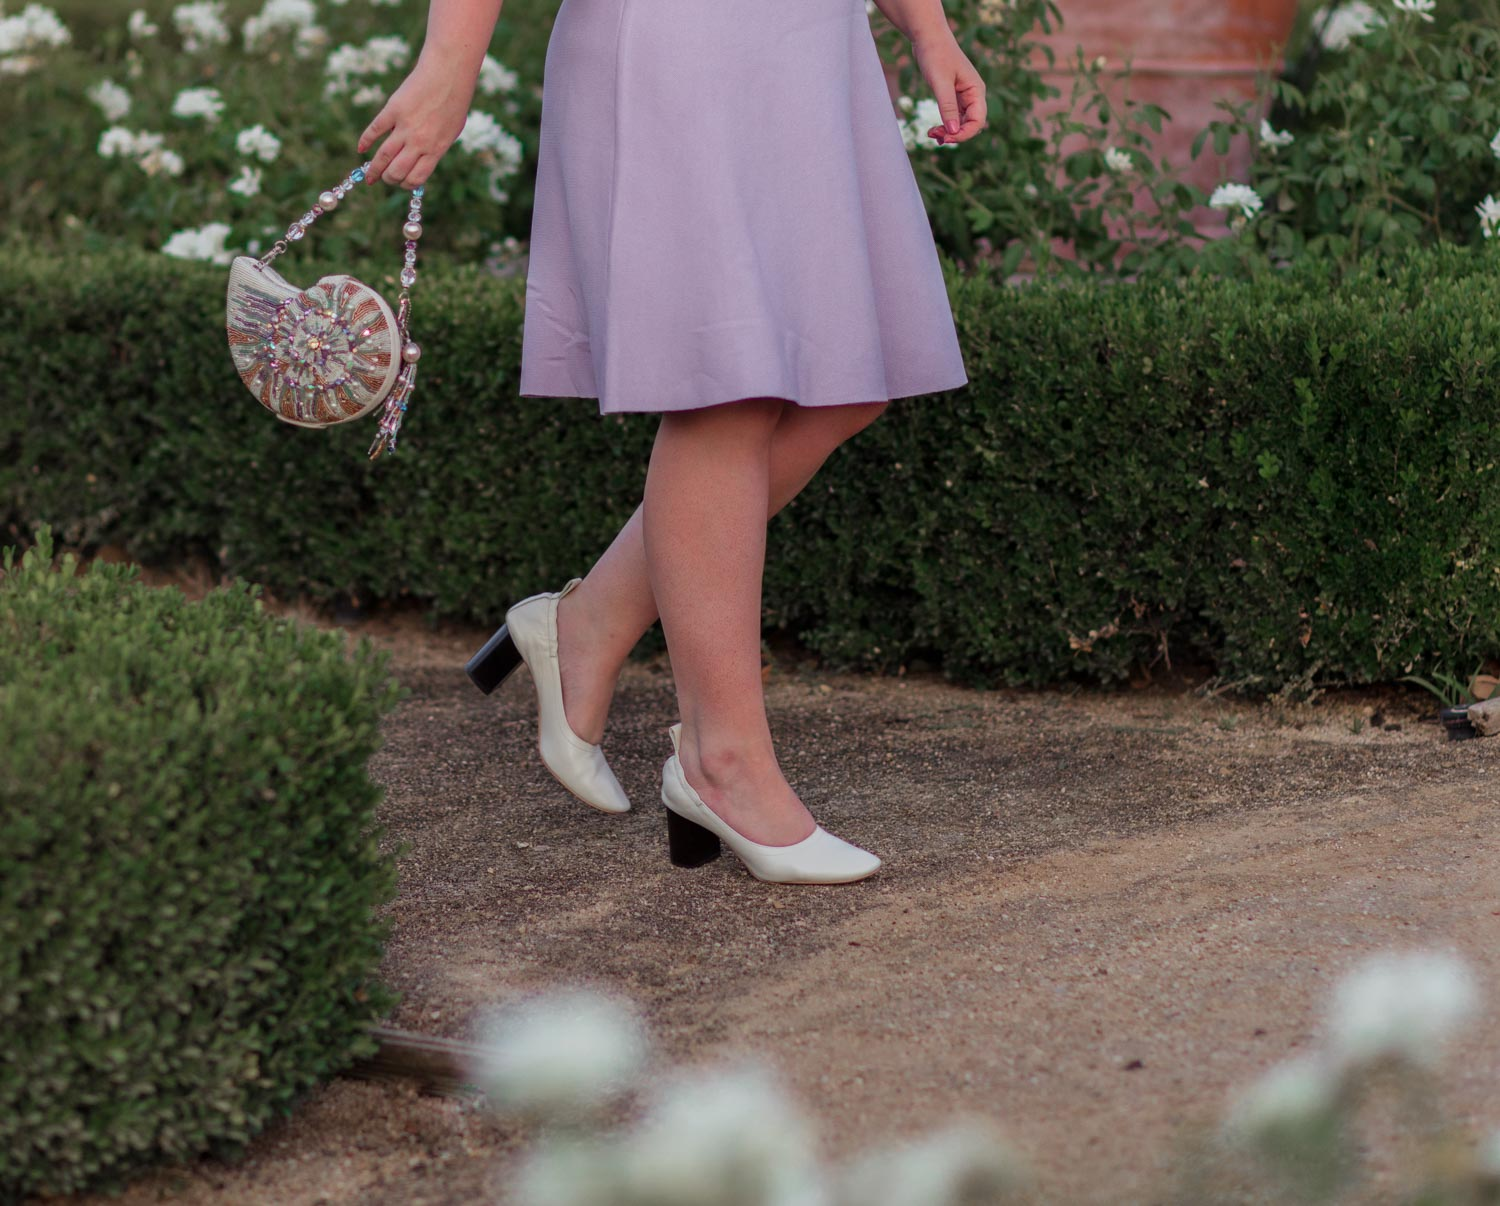 Elizabeth Hugen of Lizzie in Lace wears a lilac Eliza J sweater dress, Everlane day heel and Mary Frances handbag!